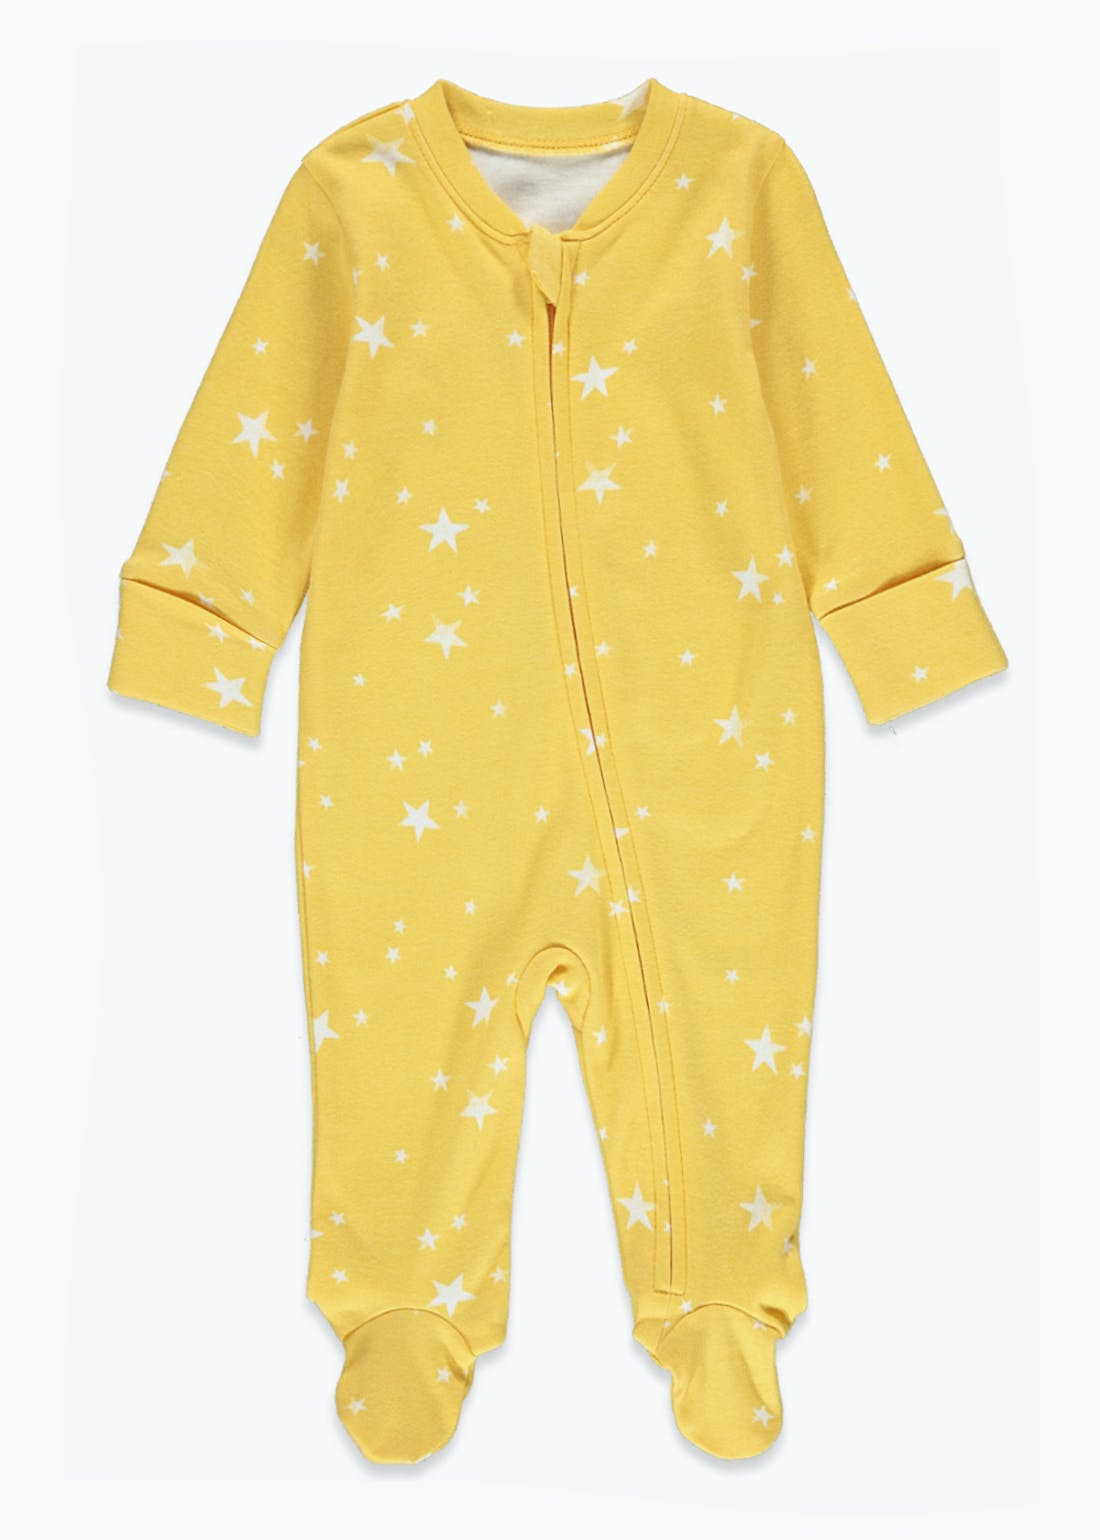 Unisex Star Zip Up Baby Grow (Tiny Baby-9mths)